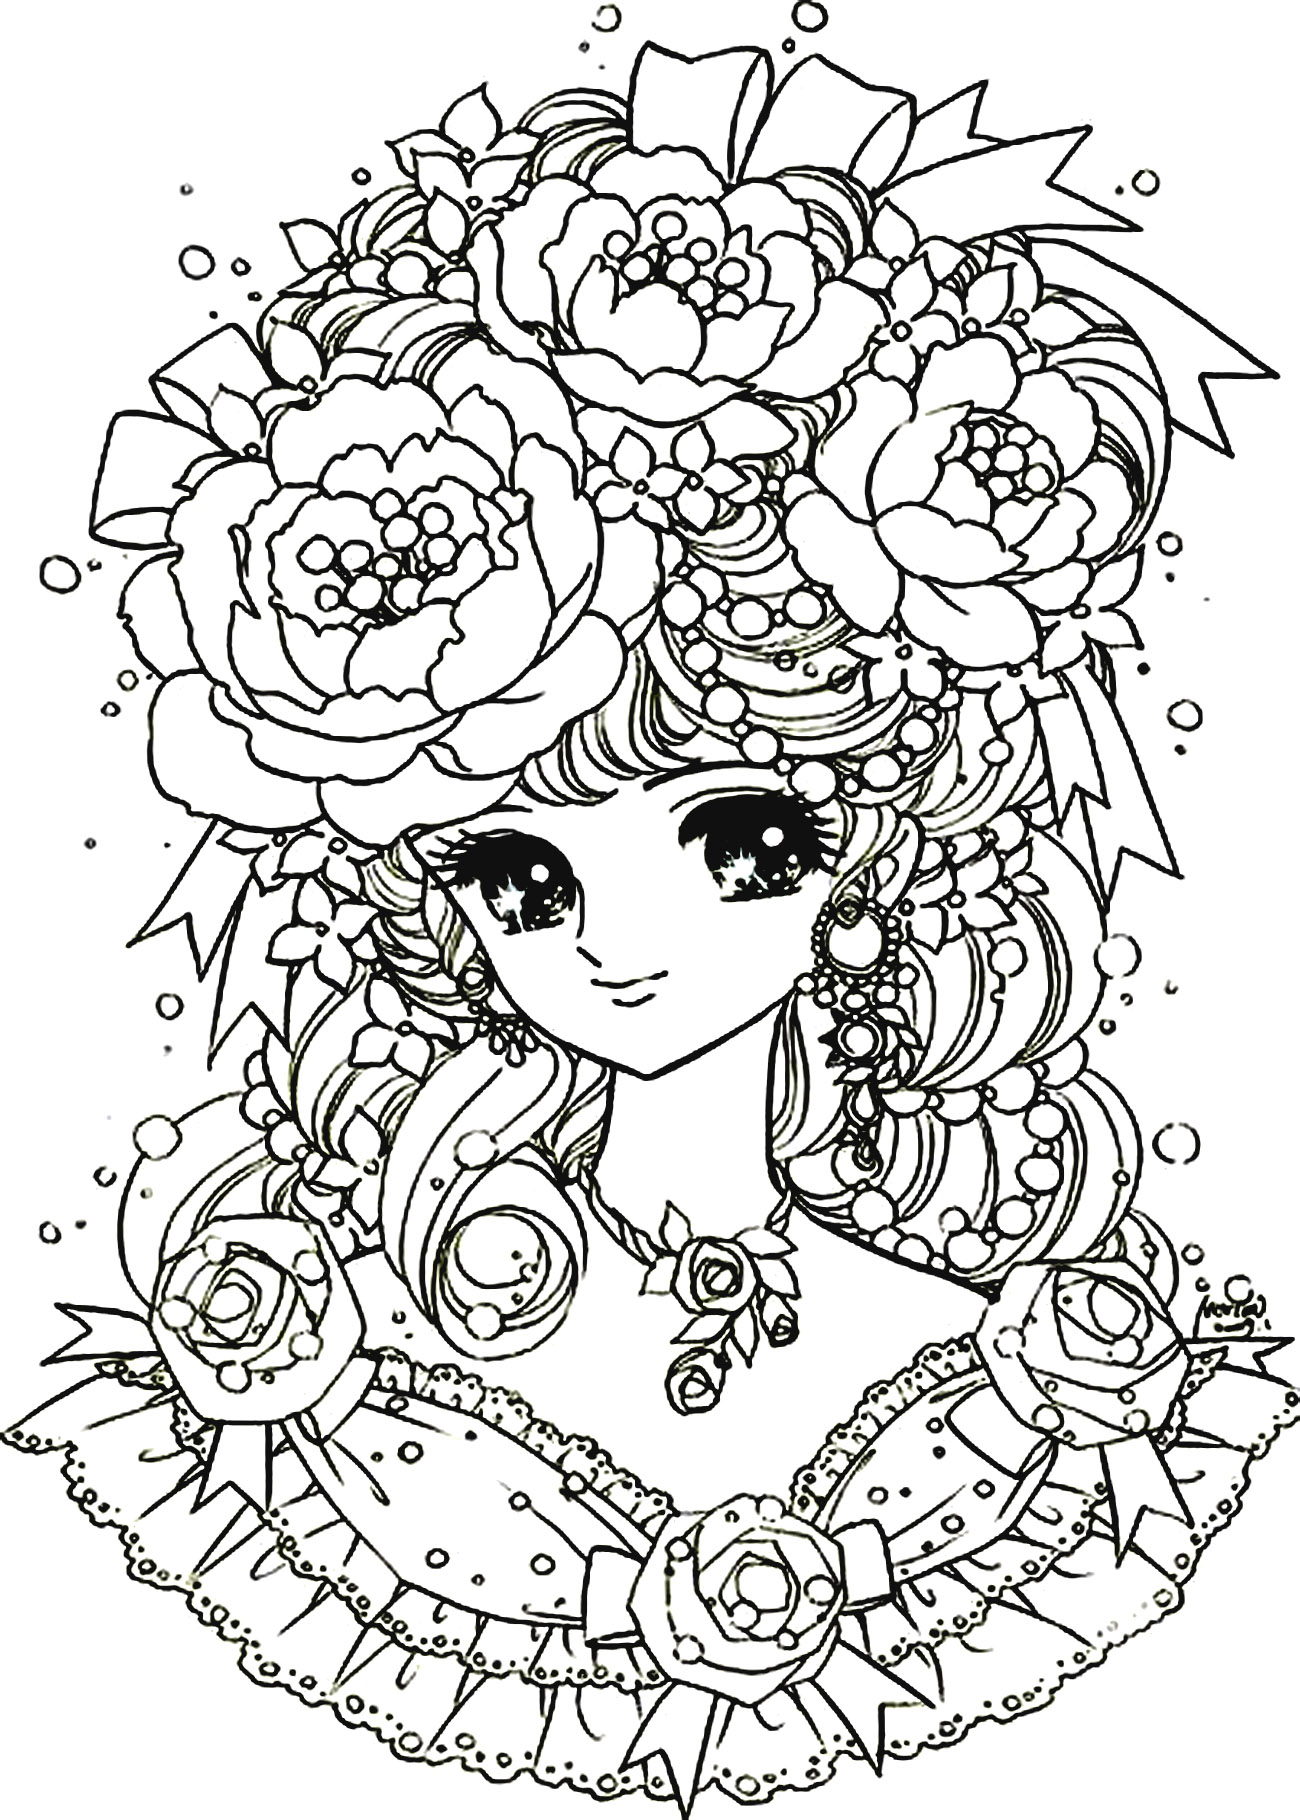 coloring pages for adults with dementia :  Coloring Adult Back To Childhood Manga Girl Flowers